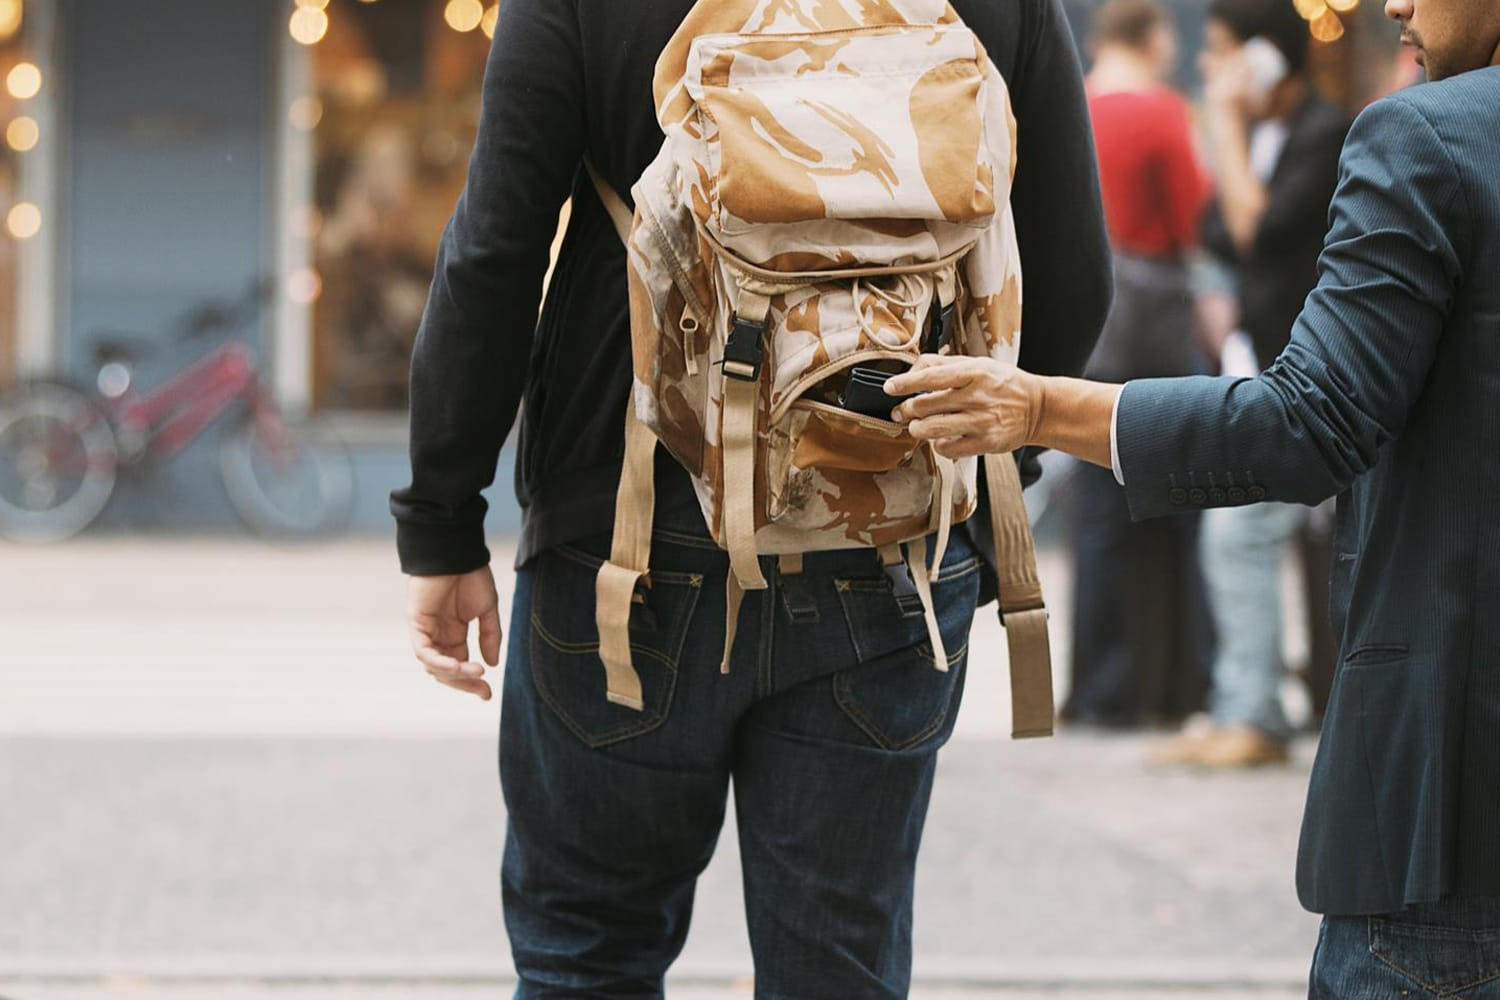 Thief stealing wallet from backpack of a man walking on street during daytime. Pickpocketing on the street during daytime